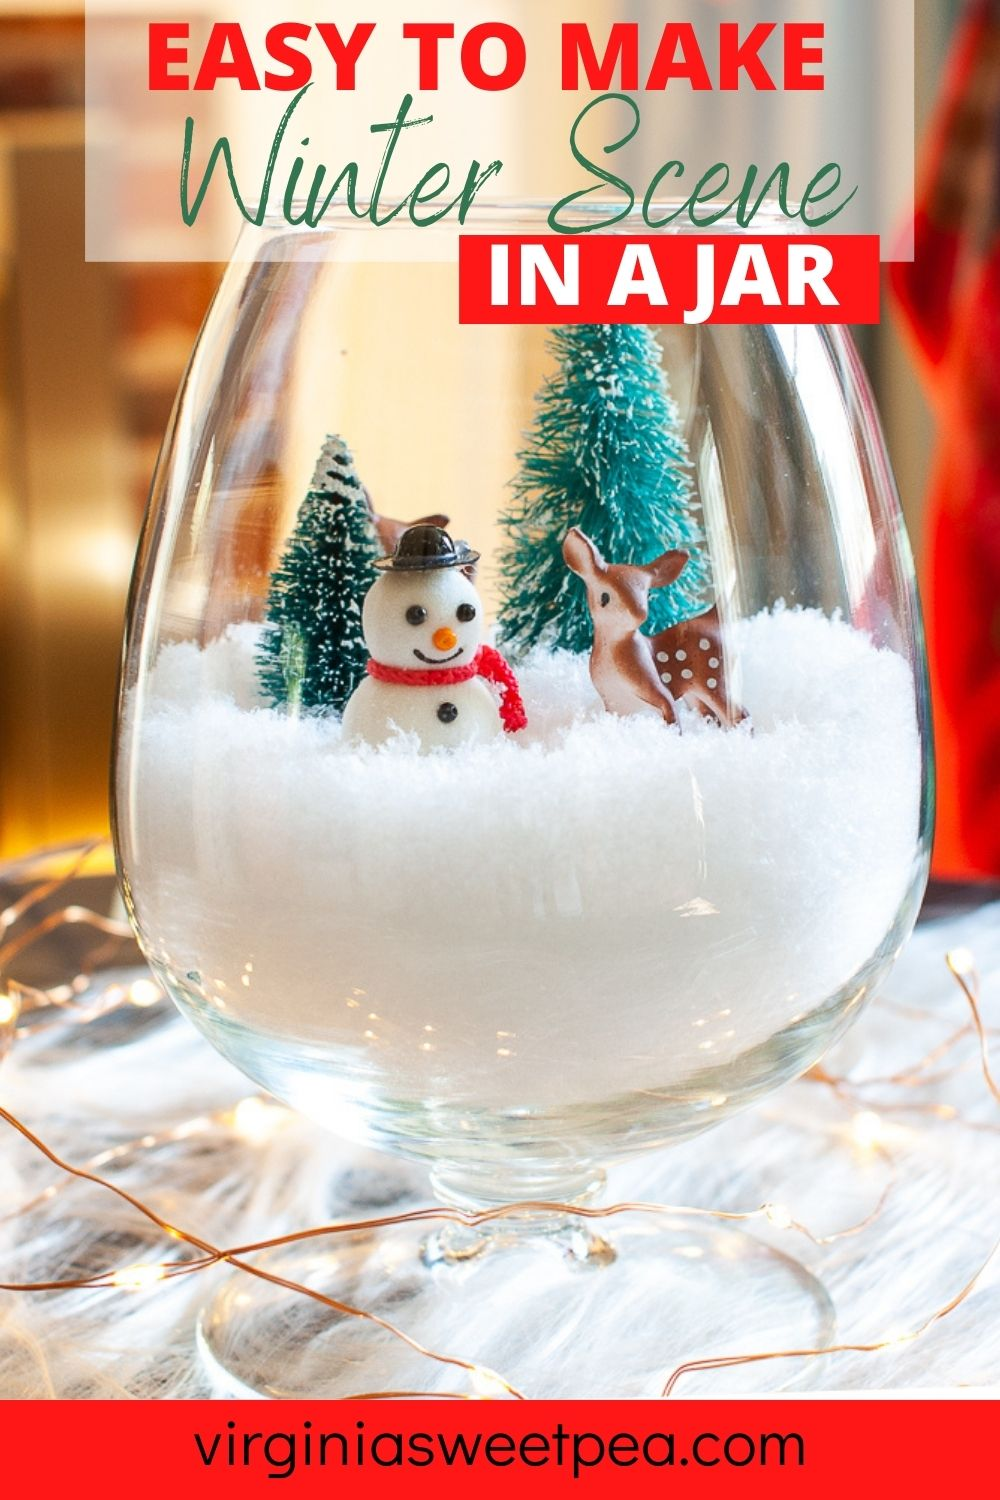 Easy to make Winter Scene in a jar - Get tips from 17 home decor bloggers for creating a winter scene in a jar. This is an easy project and is perfect for both a Christmas and winter decoration. via @spaula